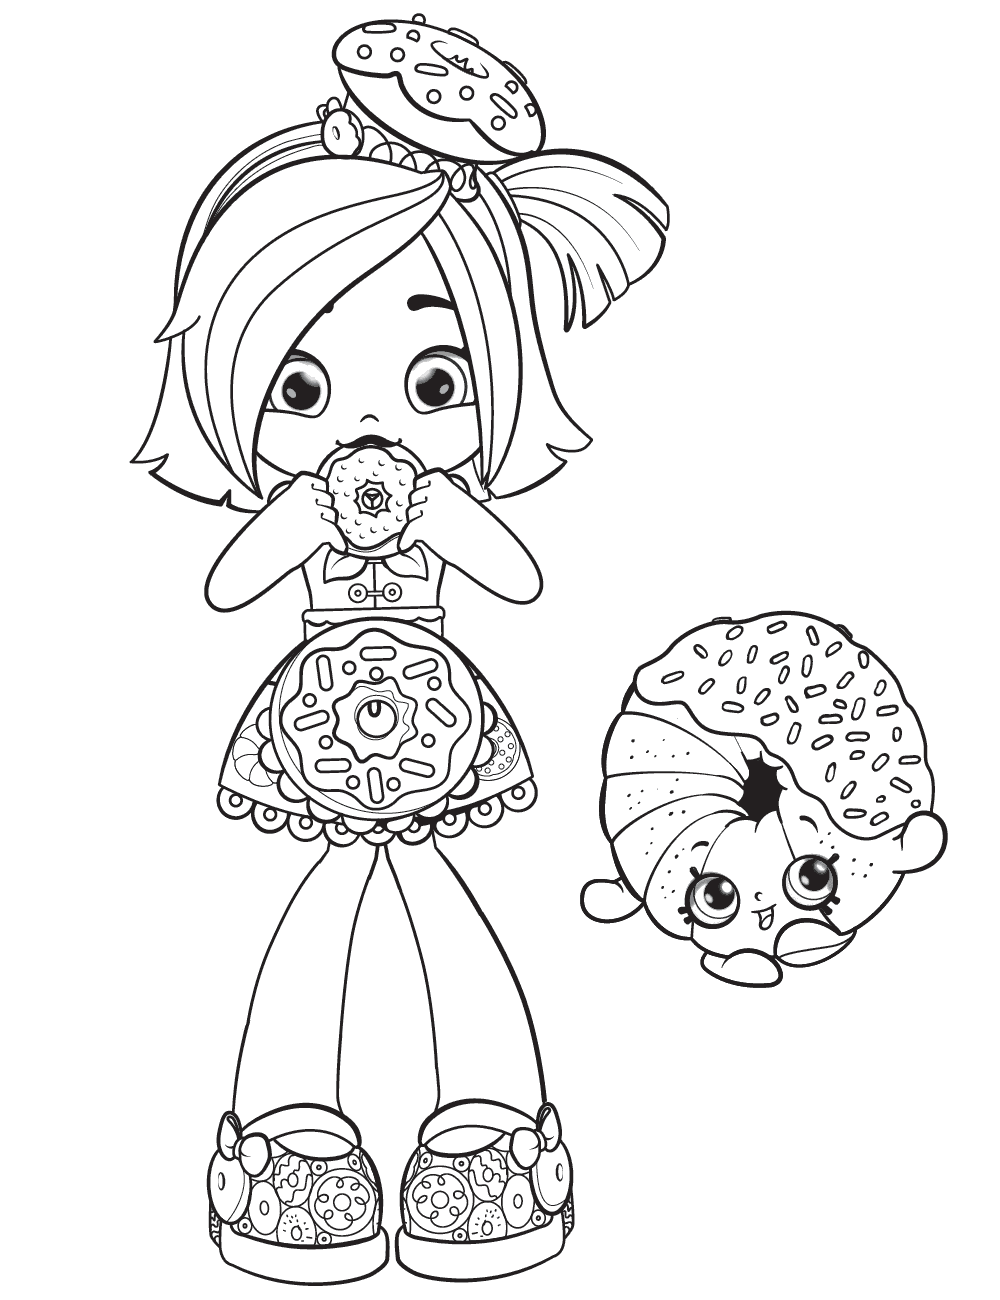 Shoppies Coloring Pages Shopkins Coloring Pages Shopkin